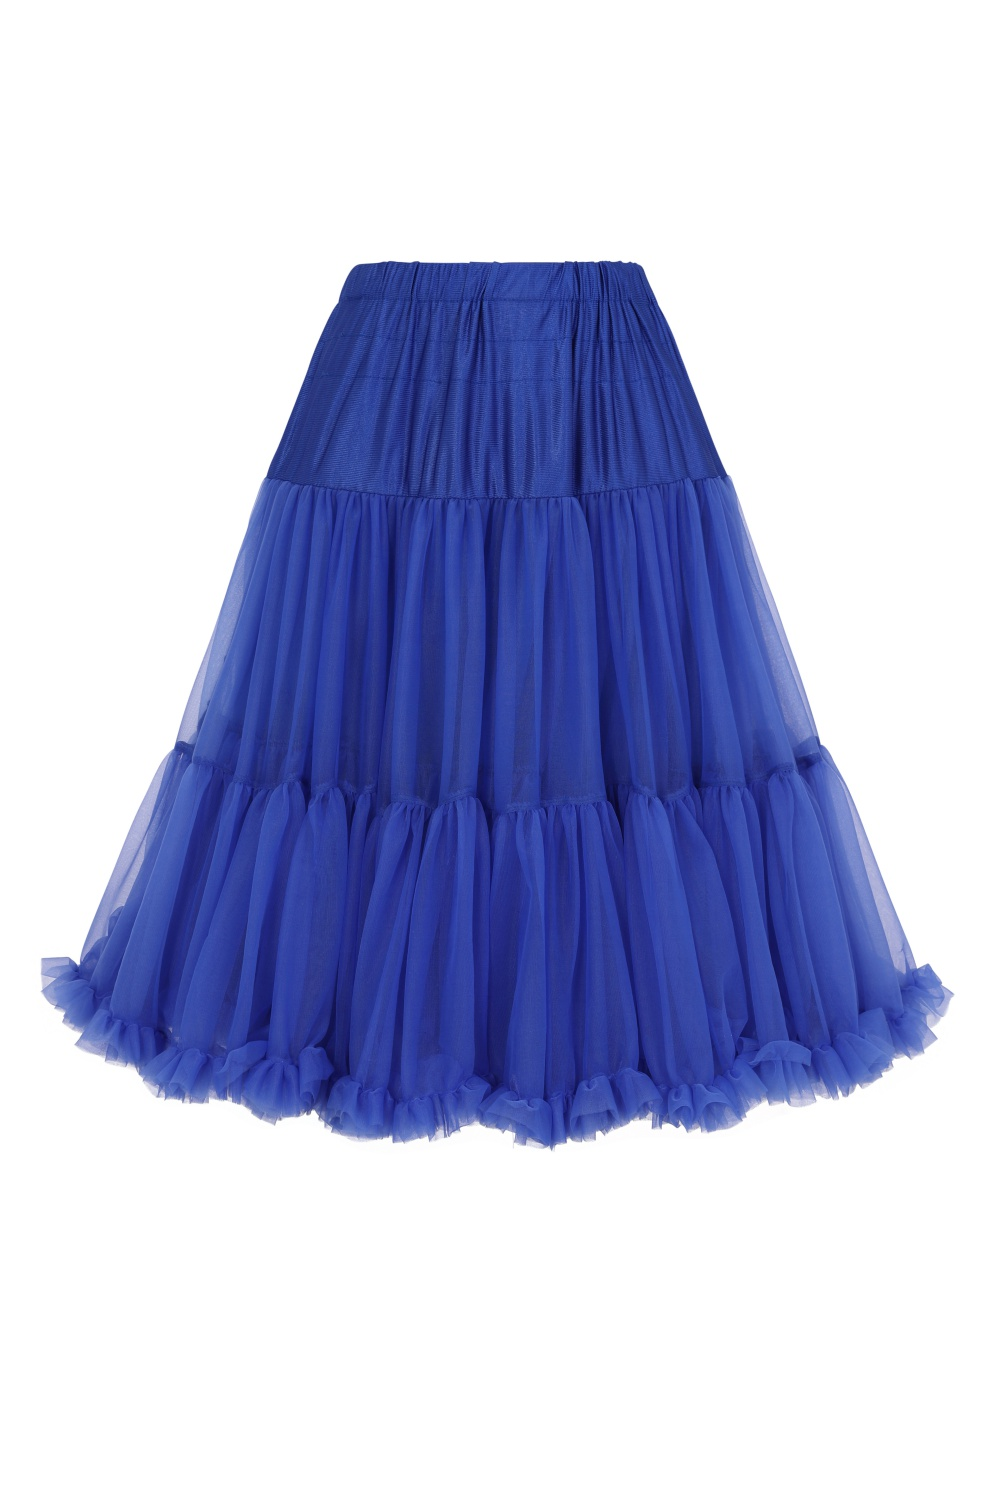 Banned Retro 50s Starlite Royal Blue Petticoat